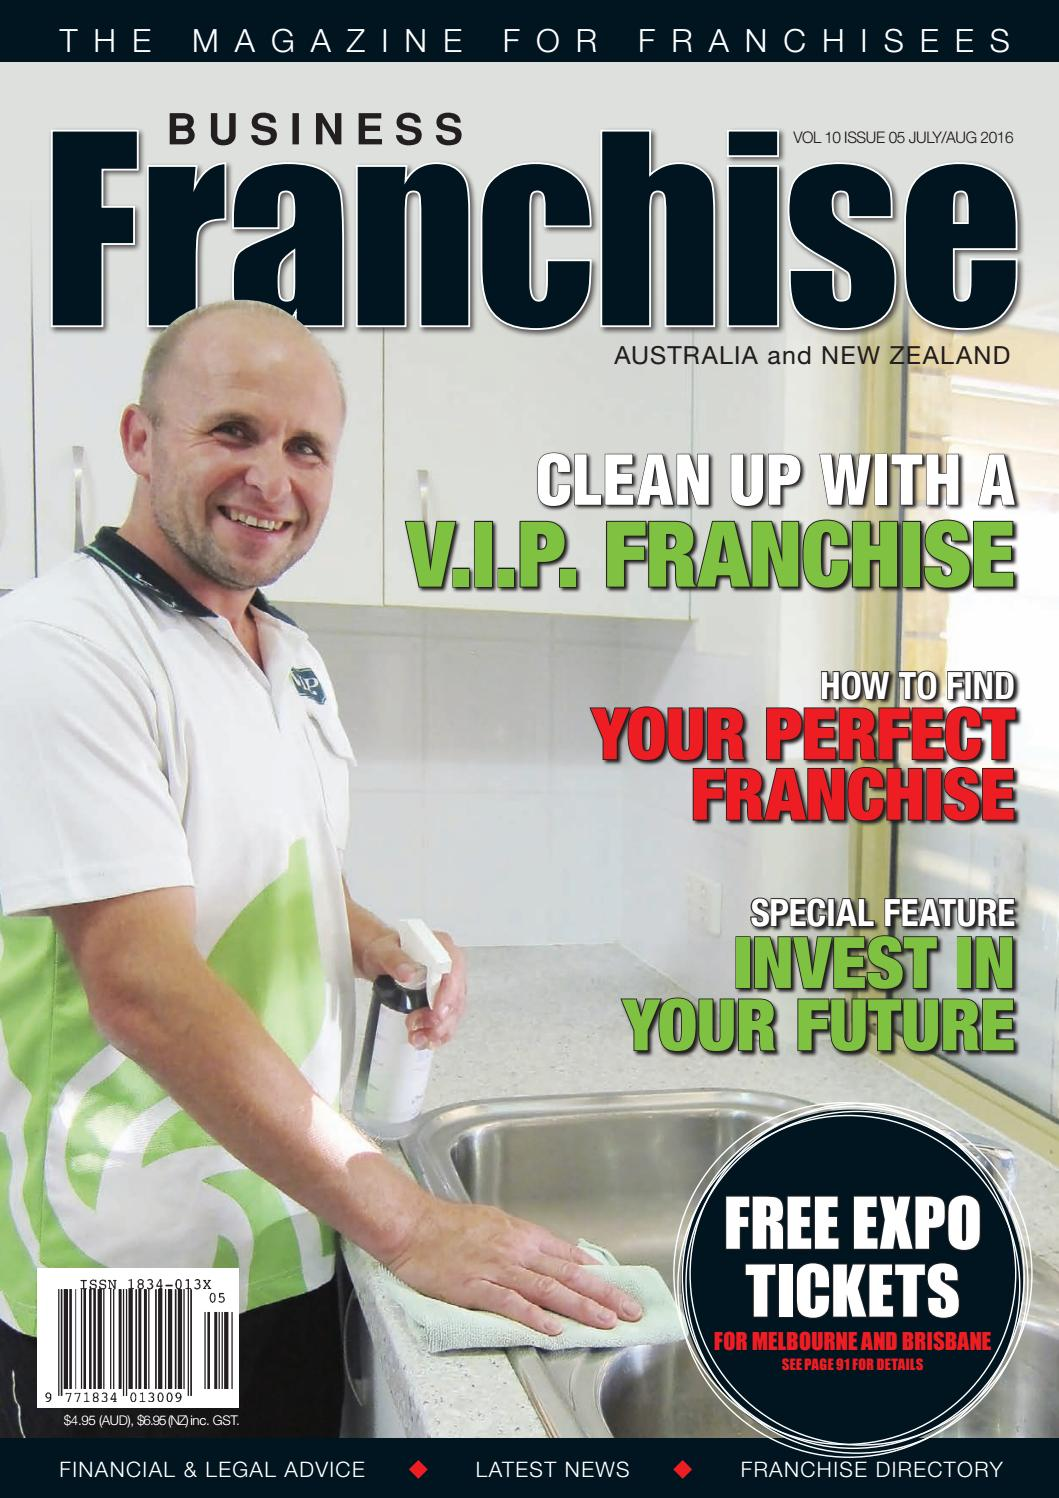 Ha hairhouse warehouse brisbane mall - Business Franchise Aus Nz July August 2016 By Cgb Publishing The Biggest Publisher Of Franchise Publications Issuu